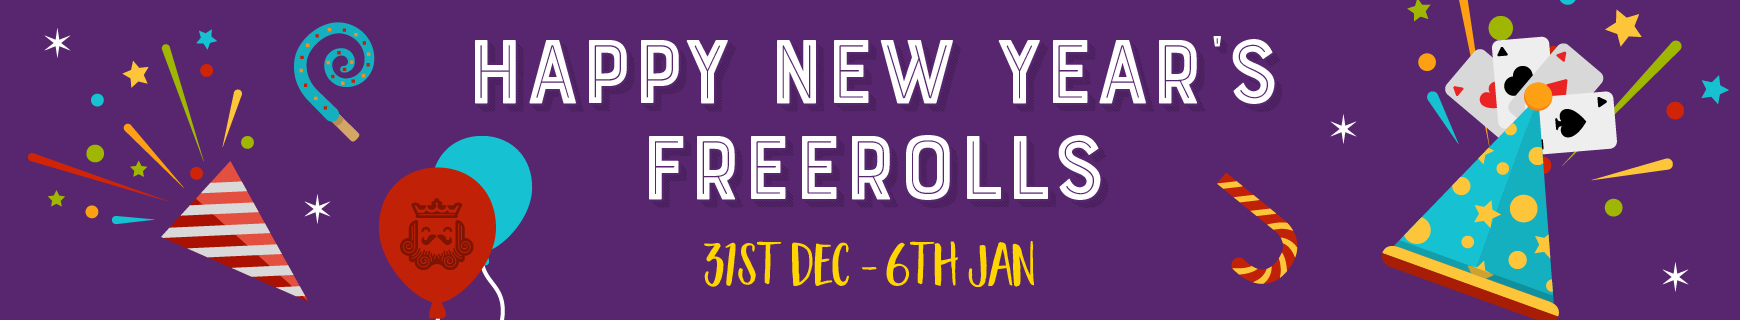 Happy new year%e2%80%99s freerolls %28870 x 160%29 2x